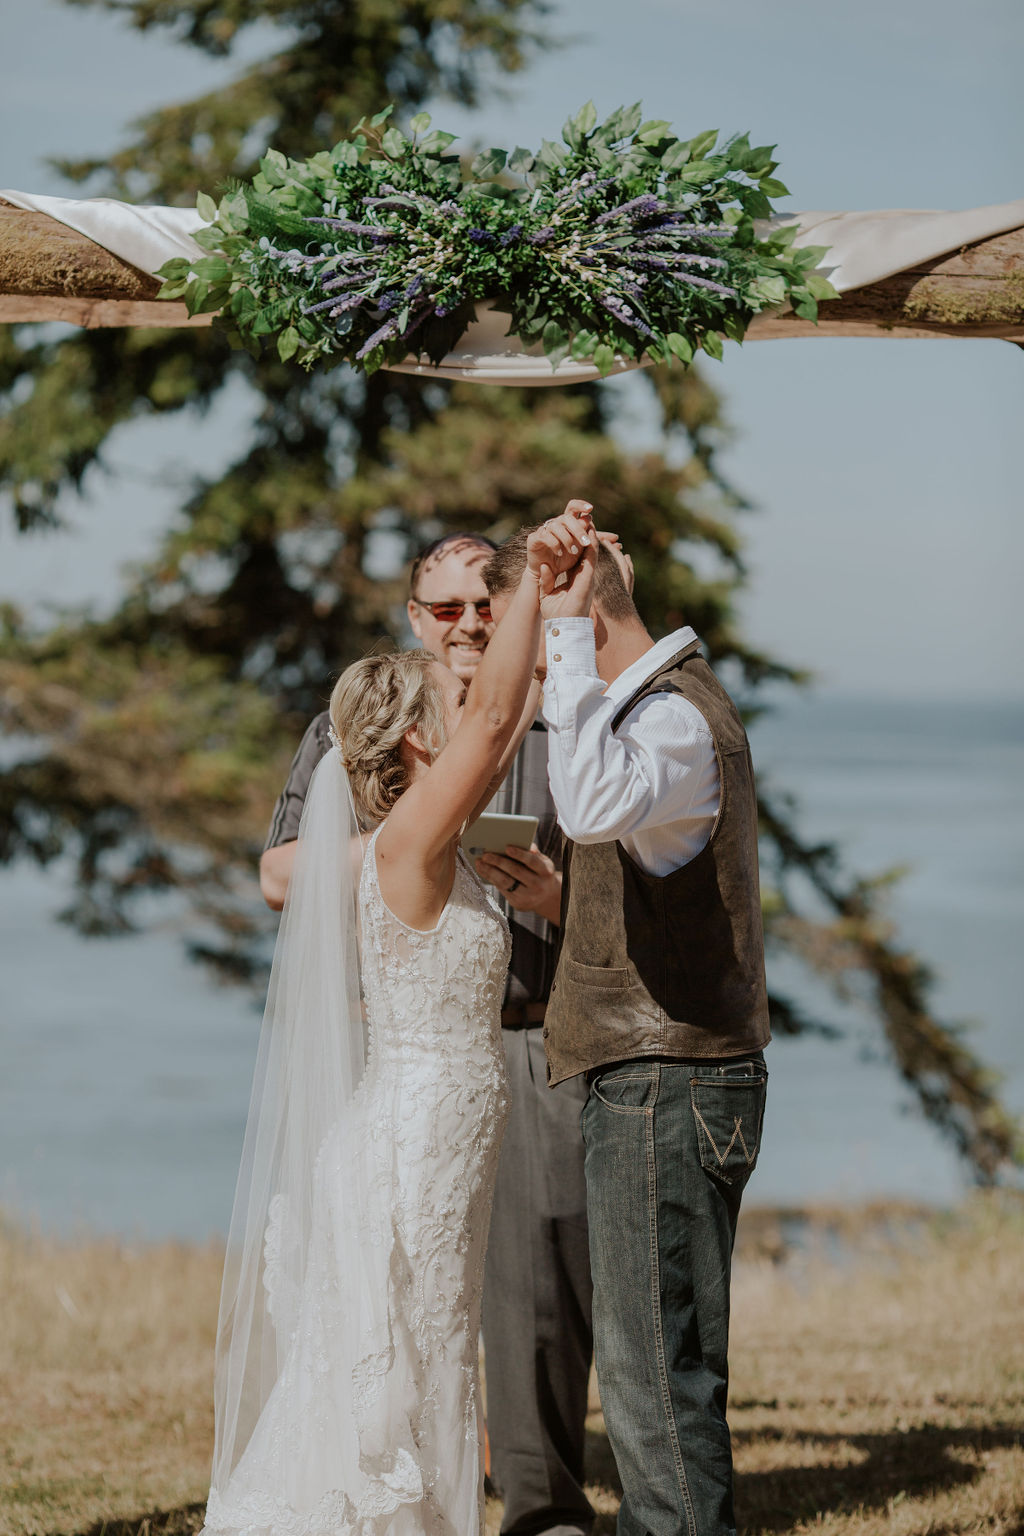 Port-Angeles-Wedding-Photographer-pnw-Whiskey-Creek-Beach-NW-Washington-couples-kayladawnphoto-kayla-dawn-photography-olympic-peninsula-hurricane-ridge-93.jpg